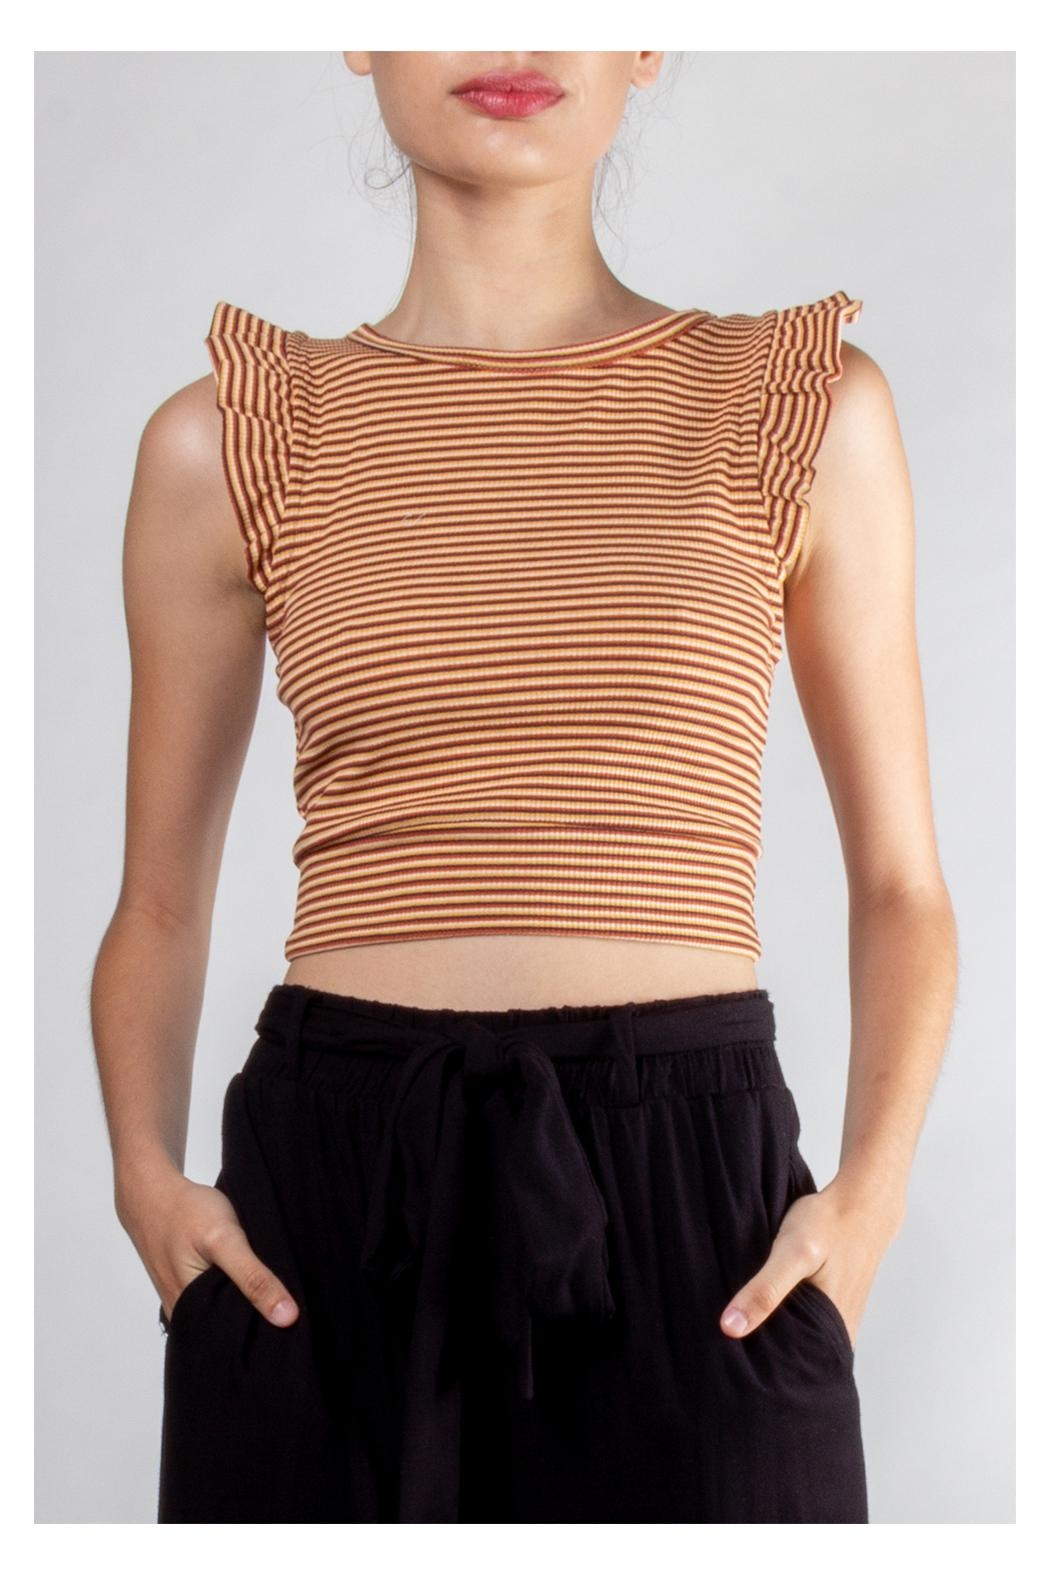 storia Ruffle Striped Crop-Top - Front Cropped Image